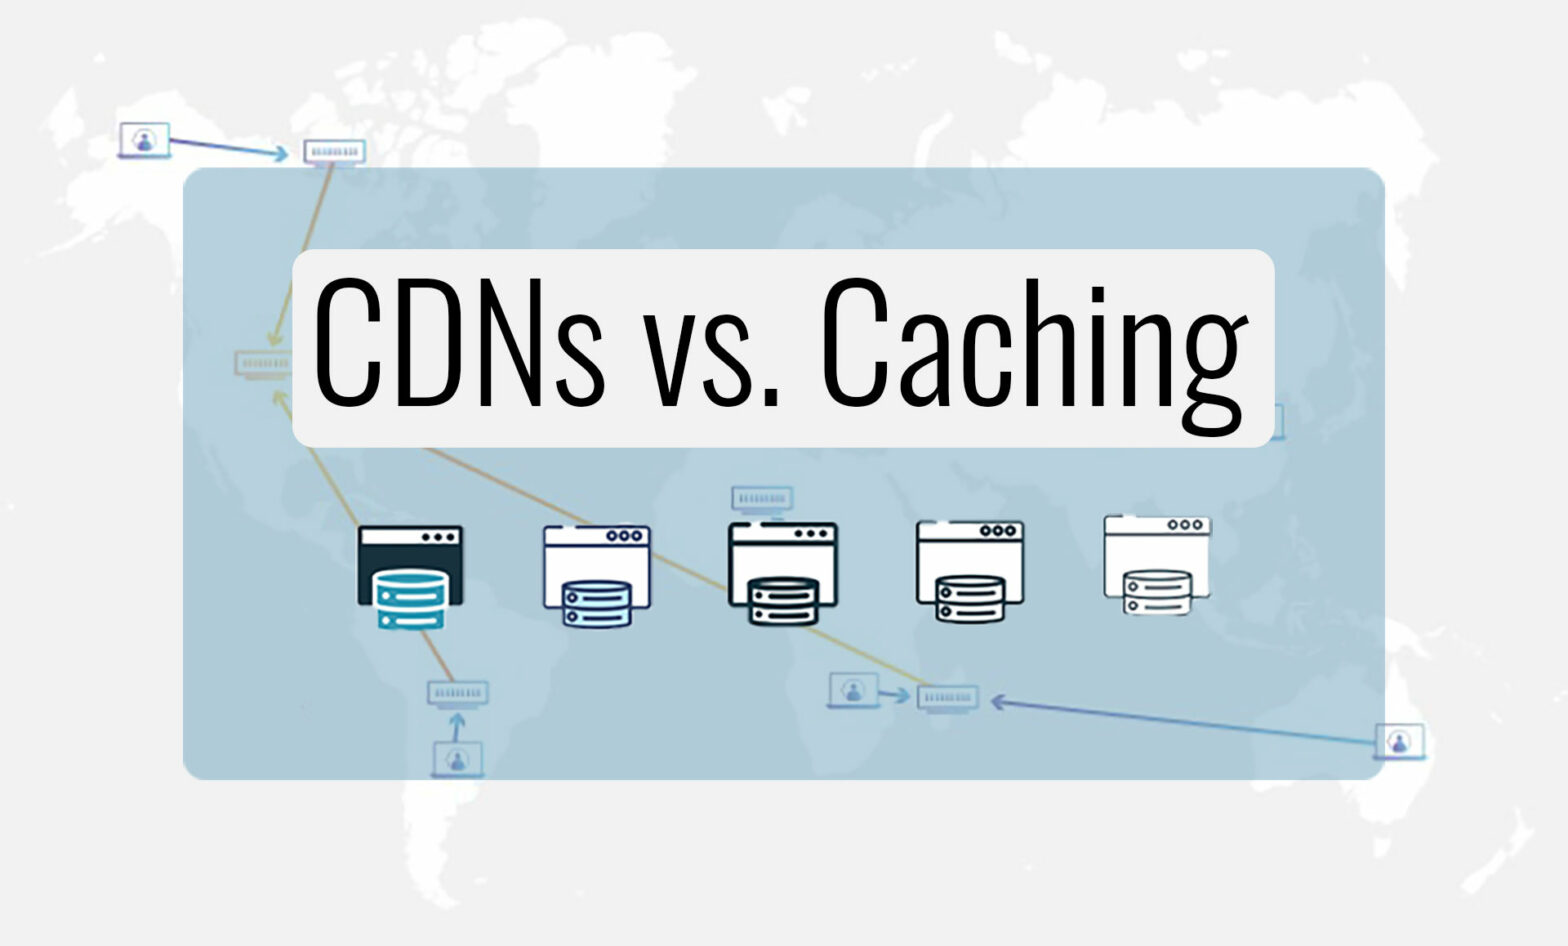 CDN vs Caching: What Are They And How Are They Different?